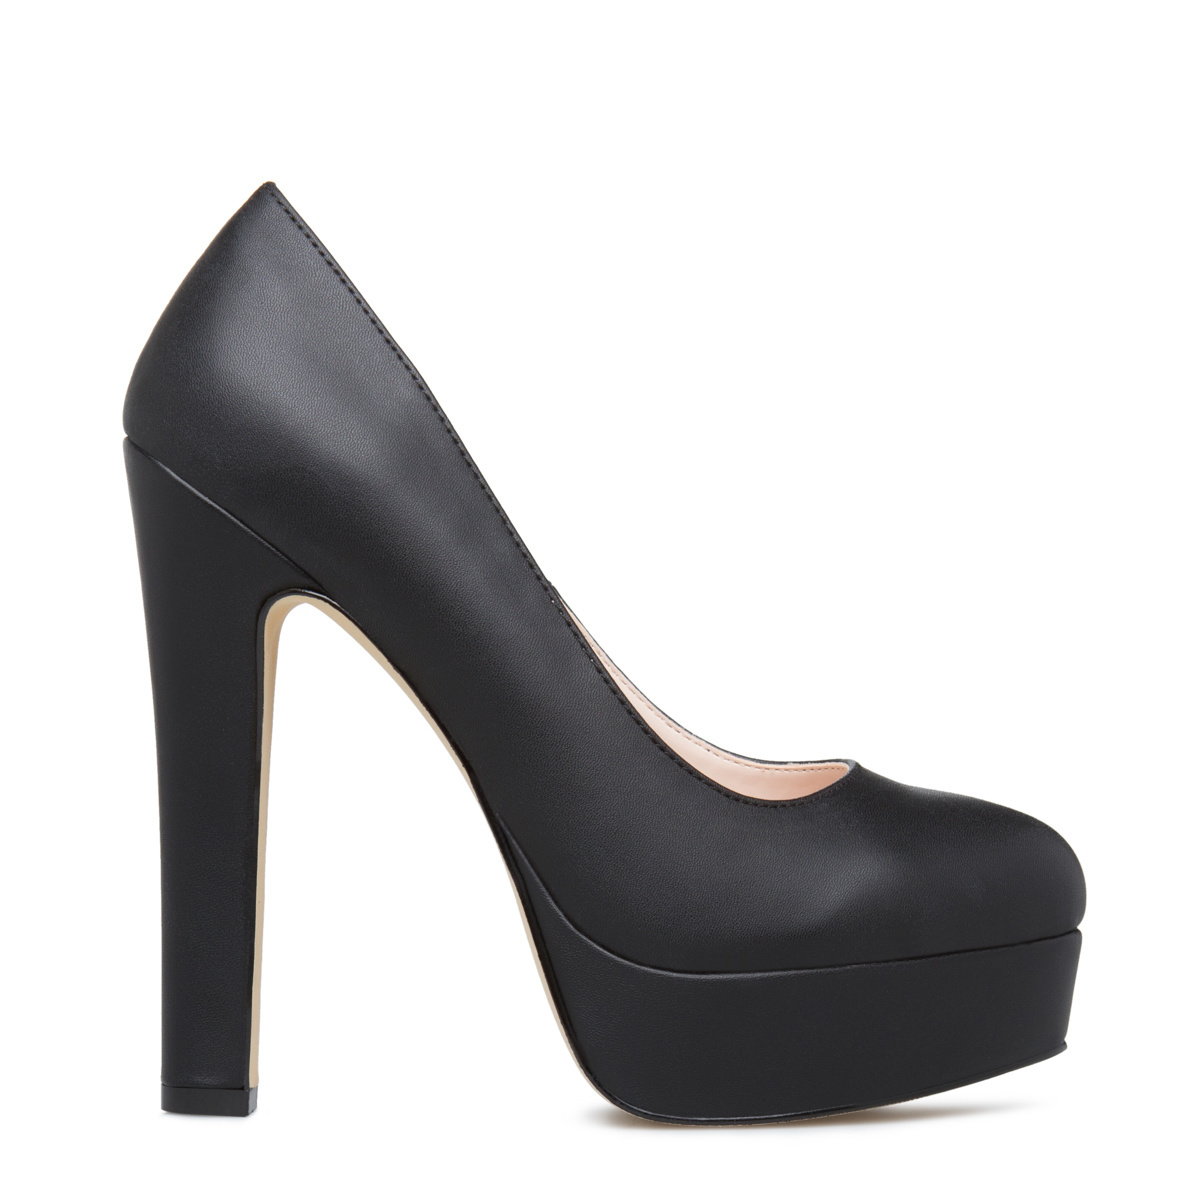 Women's Pumps, Stiletto High Heels, Women's Black Heels, Women's ...